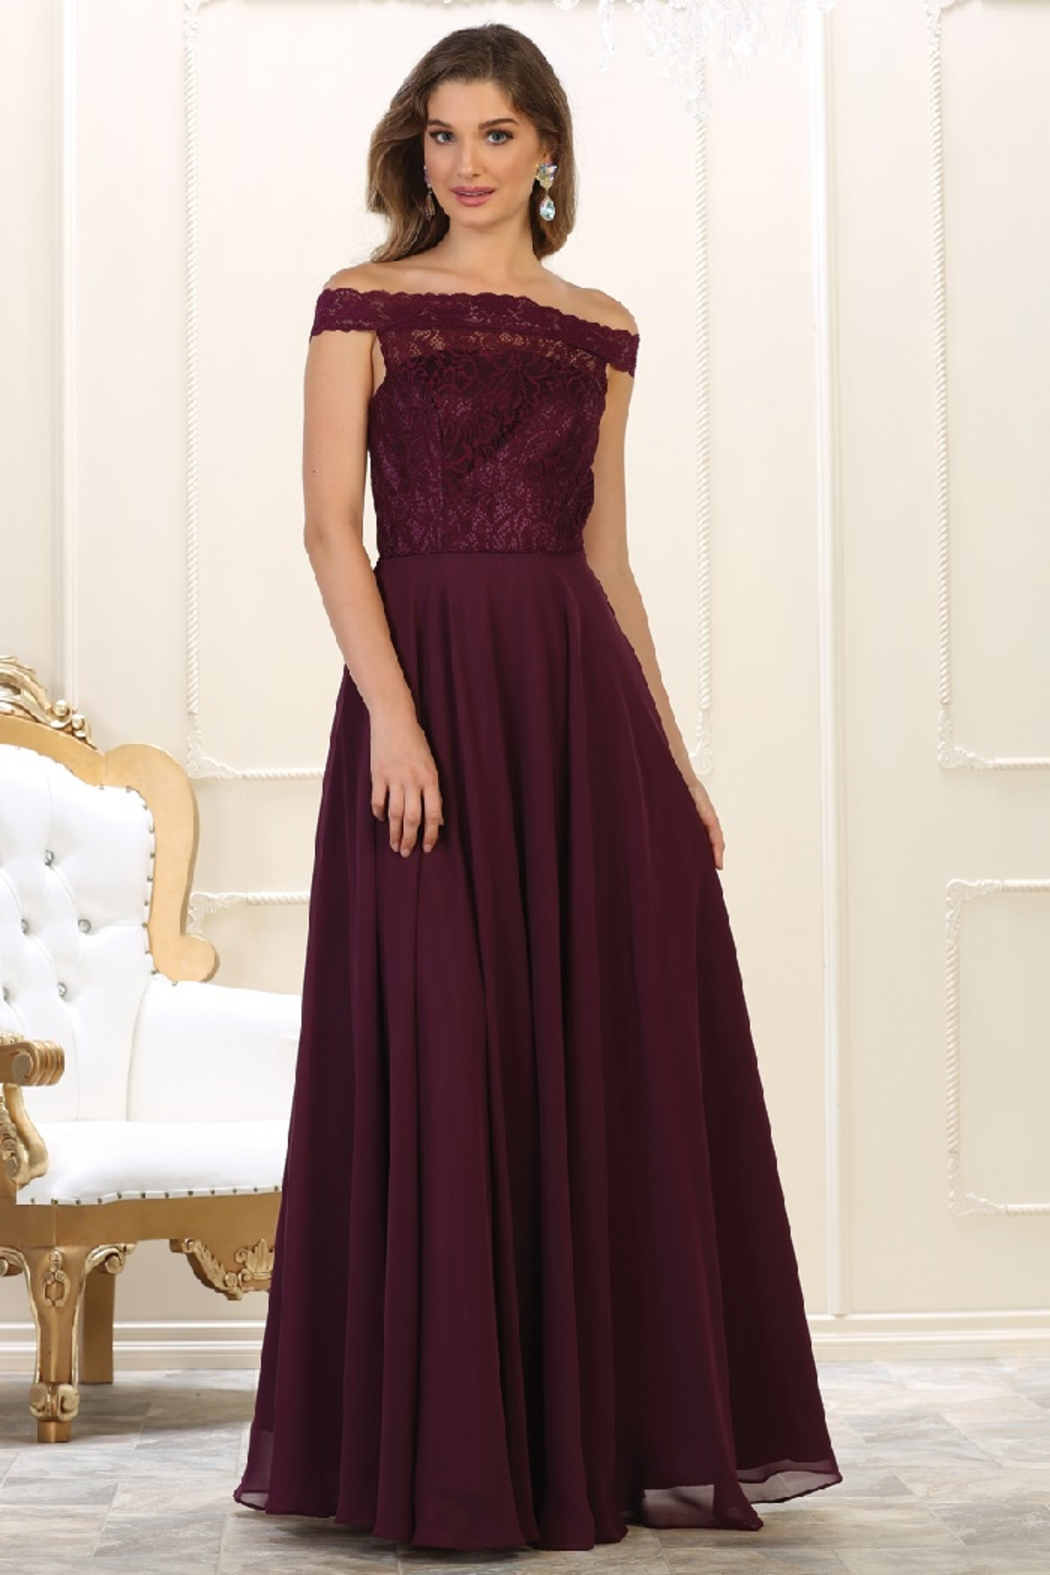 May Queen  Burgundy Lace Off Shoulder Formal Long Dress - Main Image